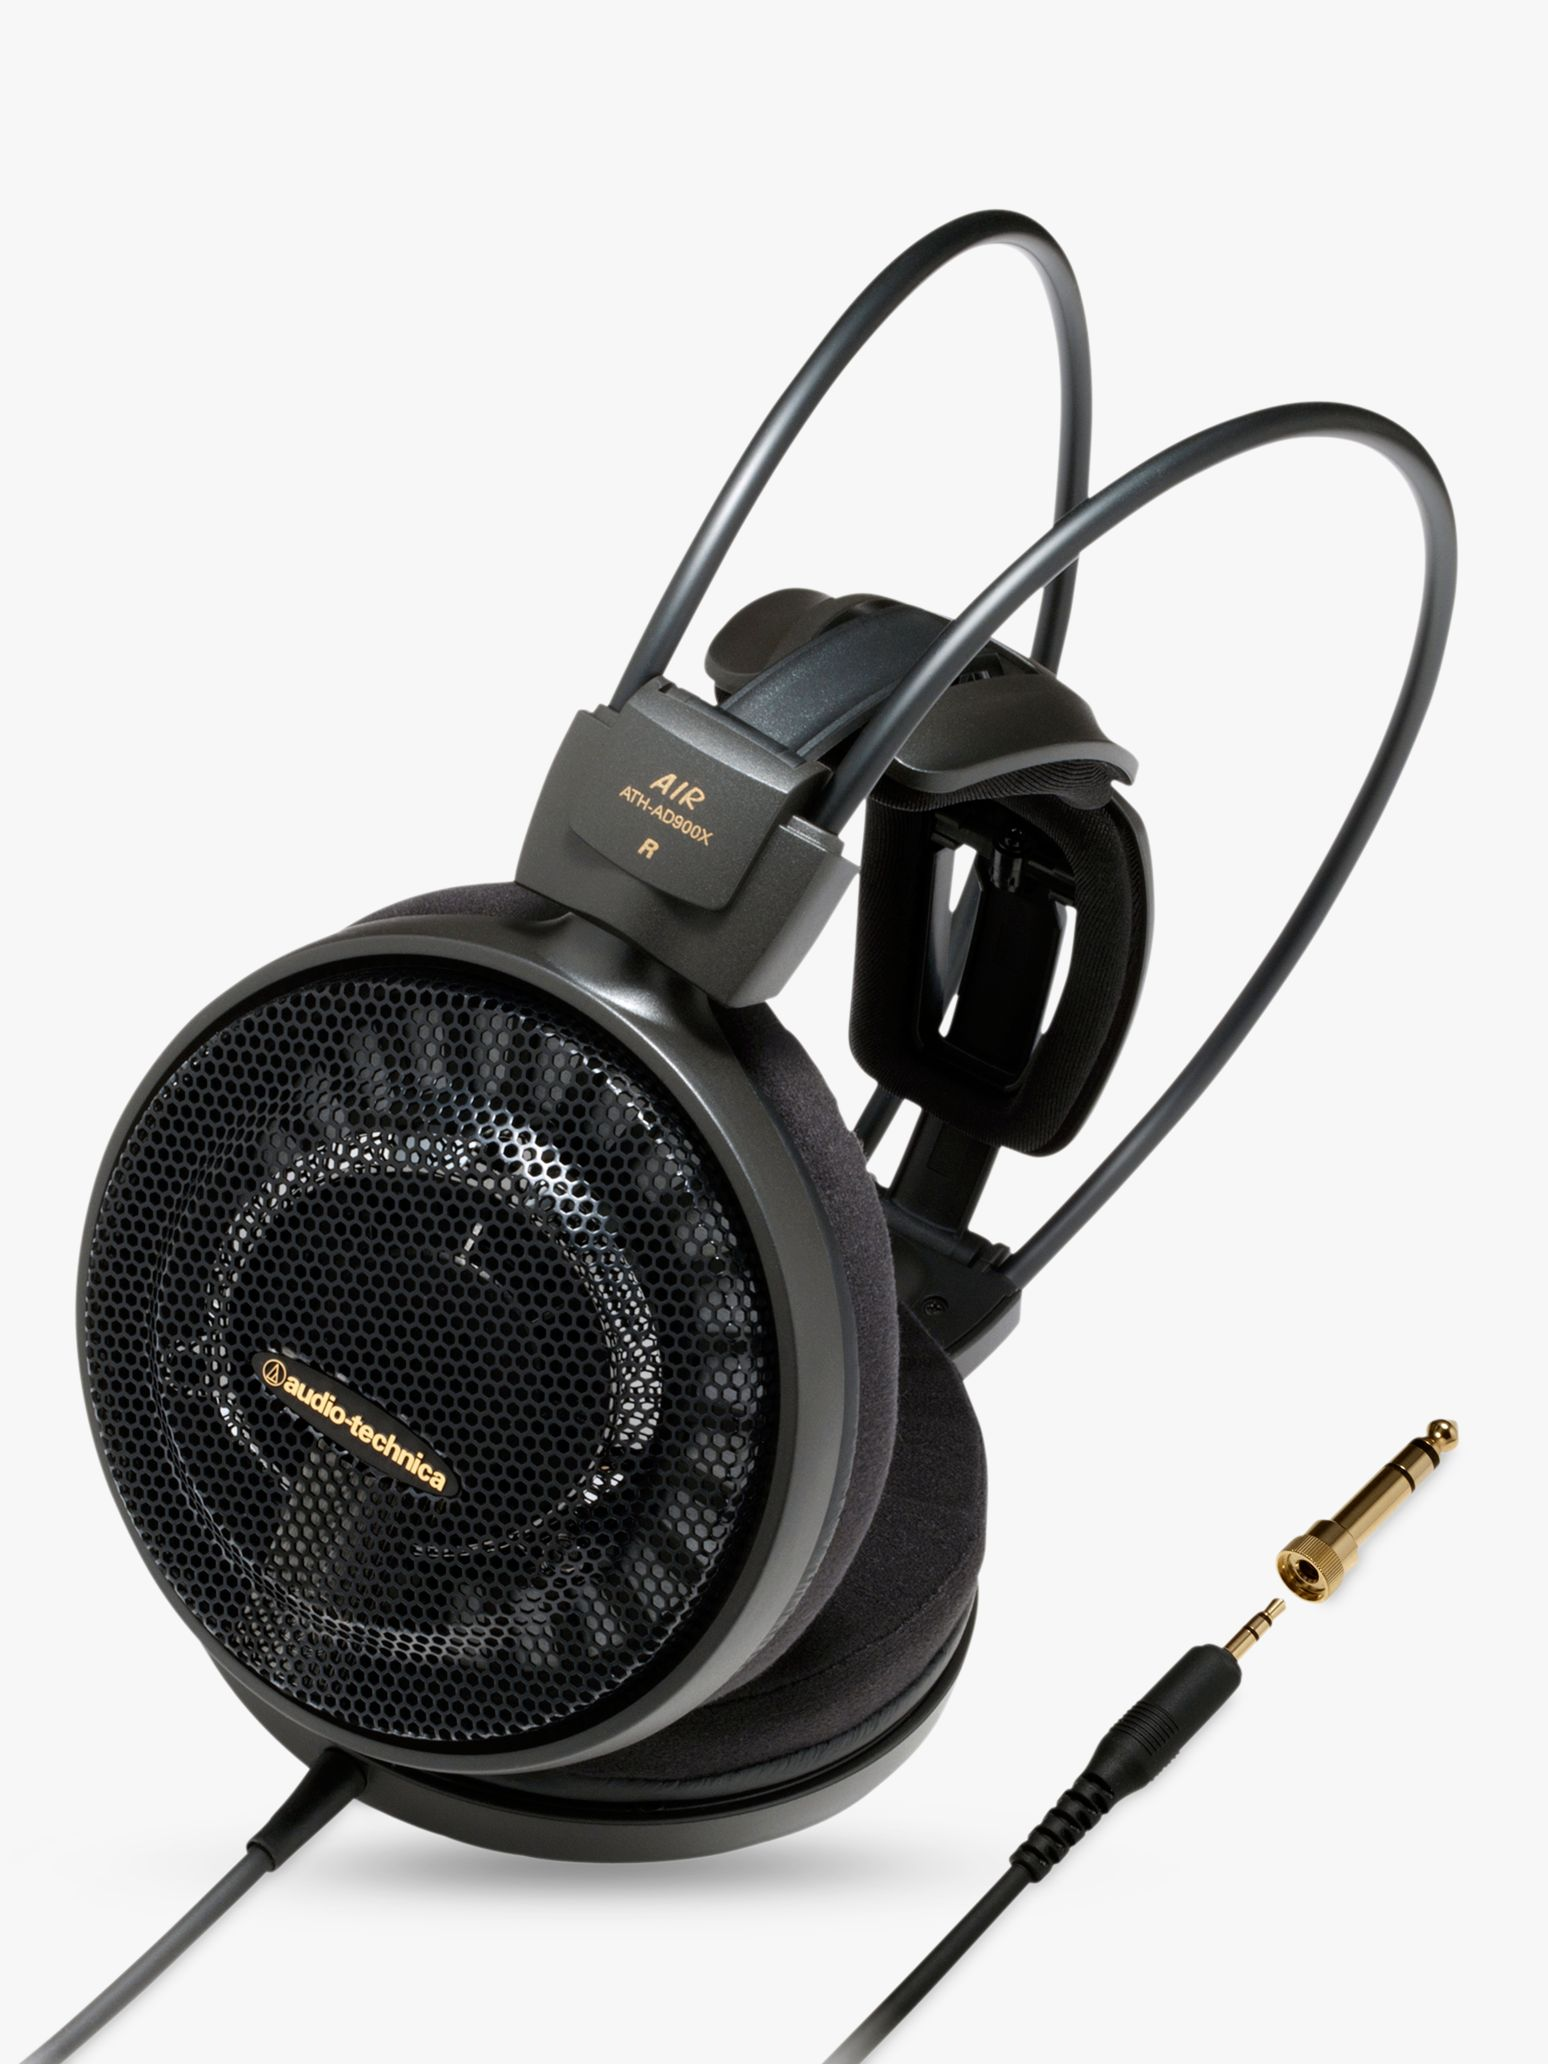 Audio-Technica Audio-Technica ATH-AD500X Audiophile Open-Air Over-Ear Headphones, Black